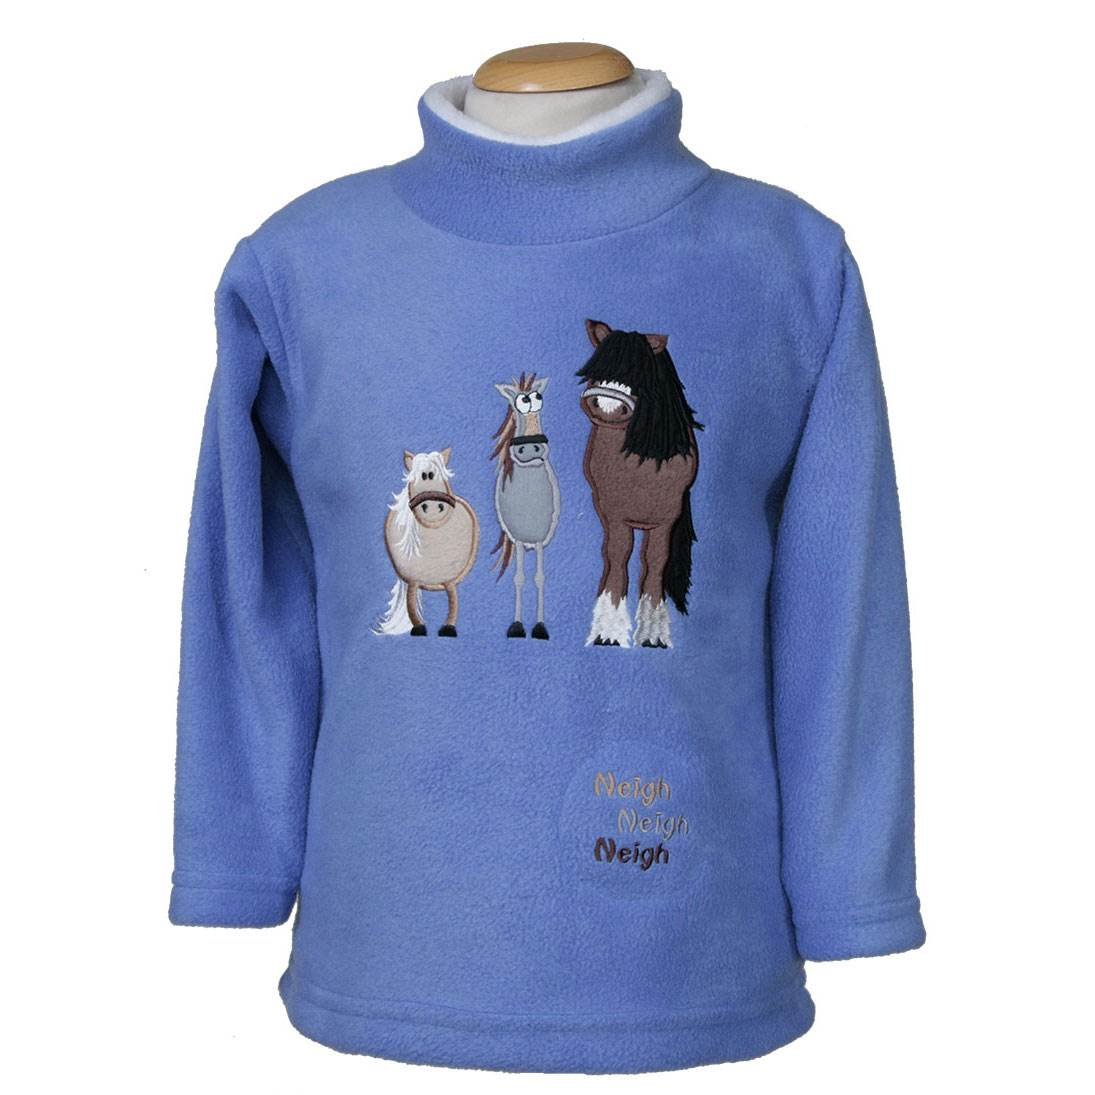 Kids embroidered 'Dozy Mares' fleece tunic with a sewn in sound effect